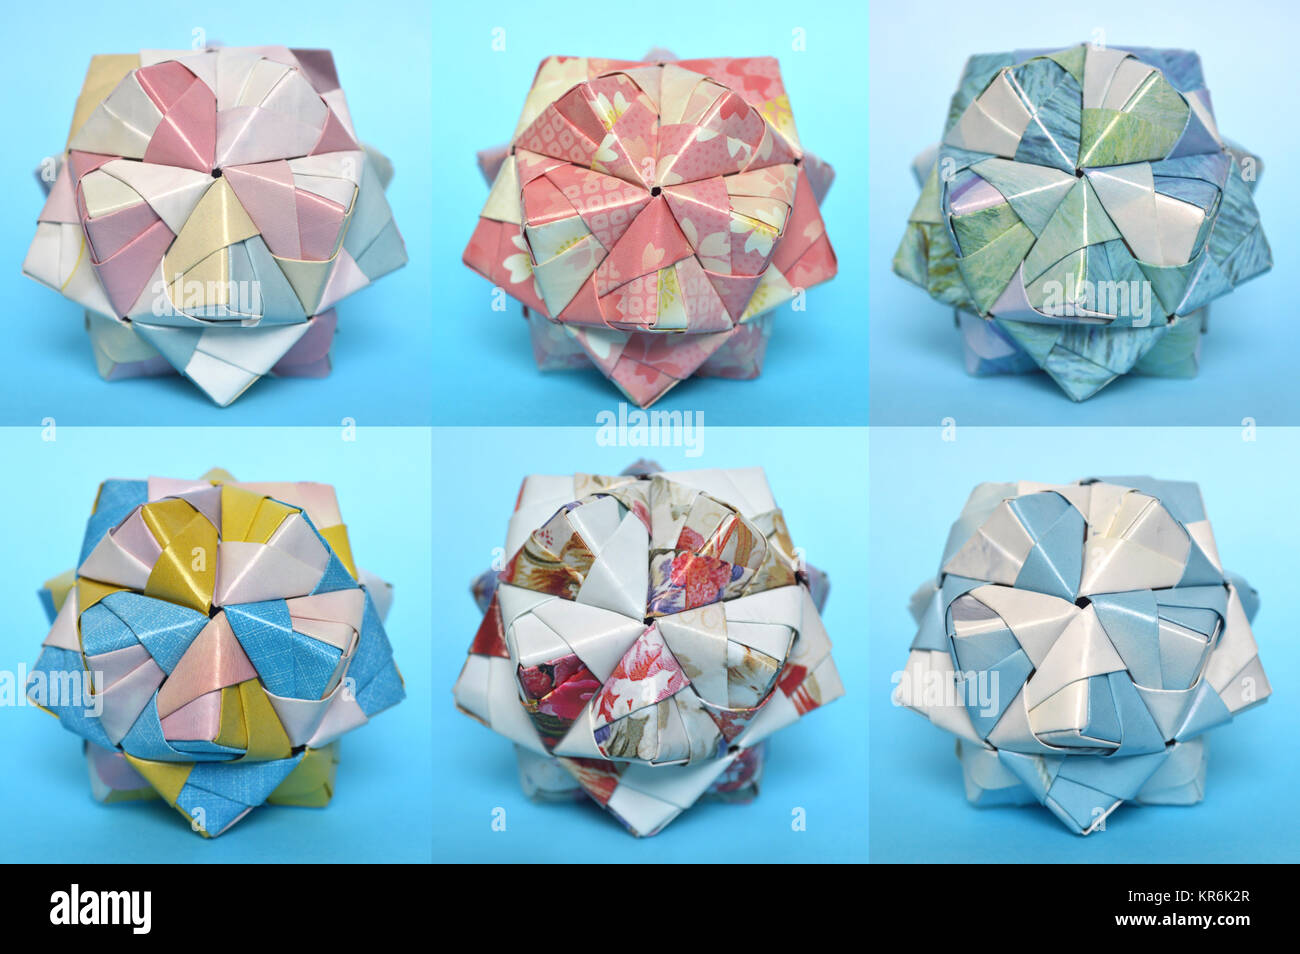 Modular Origami: How to Make a Cube, Octahedron & Icosahedron from ... | 954x1300